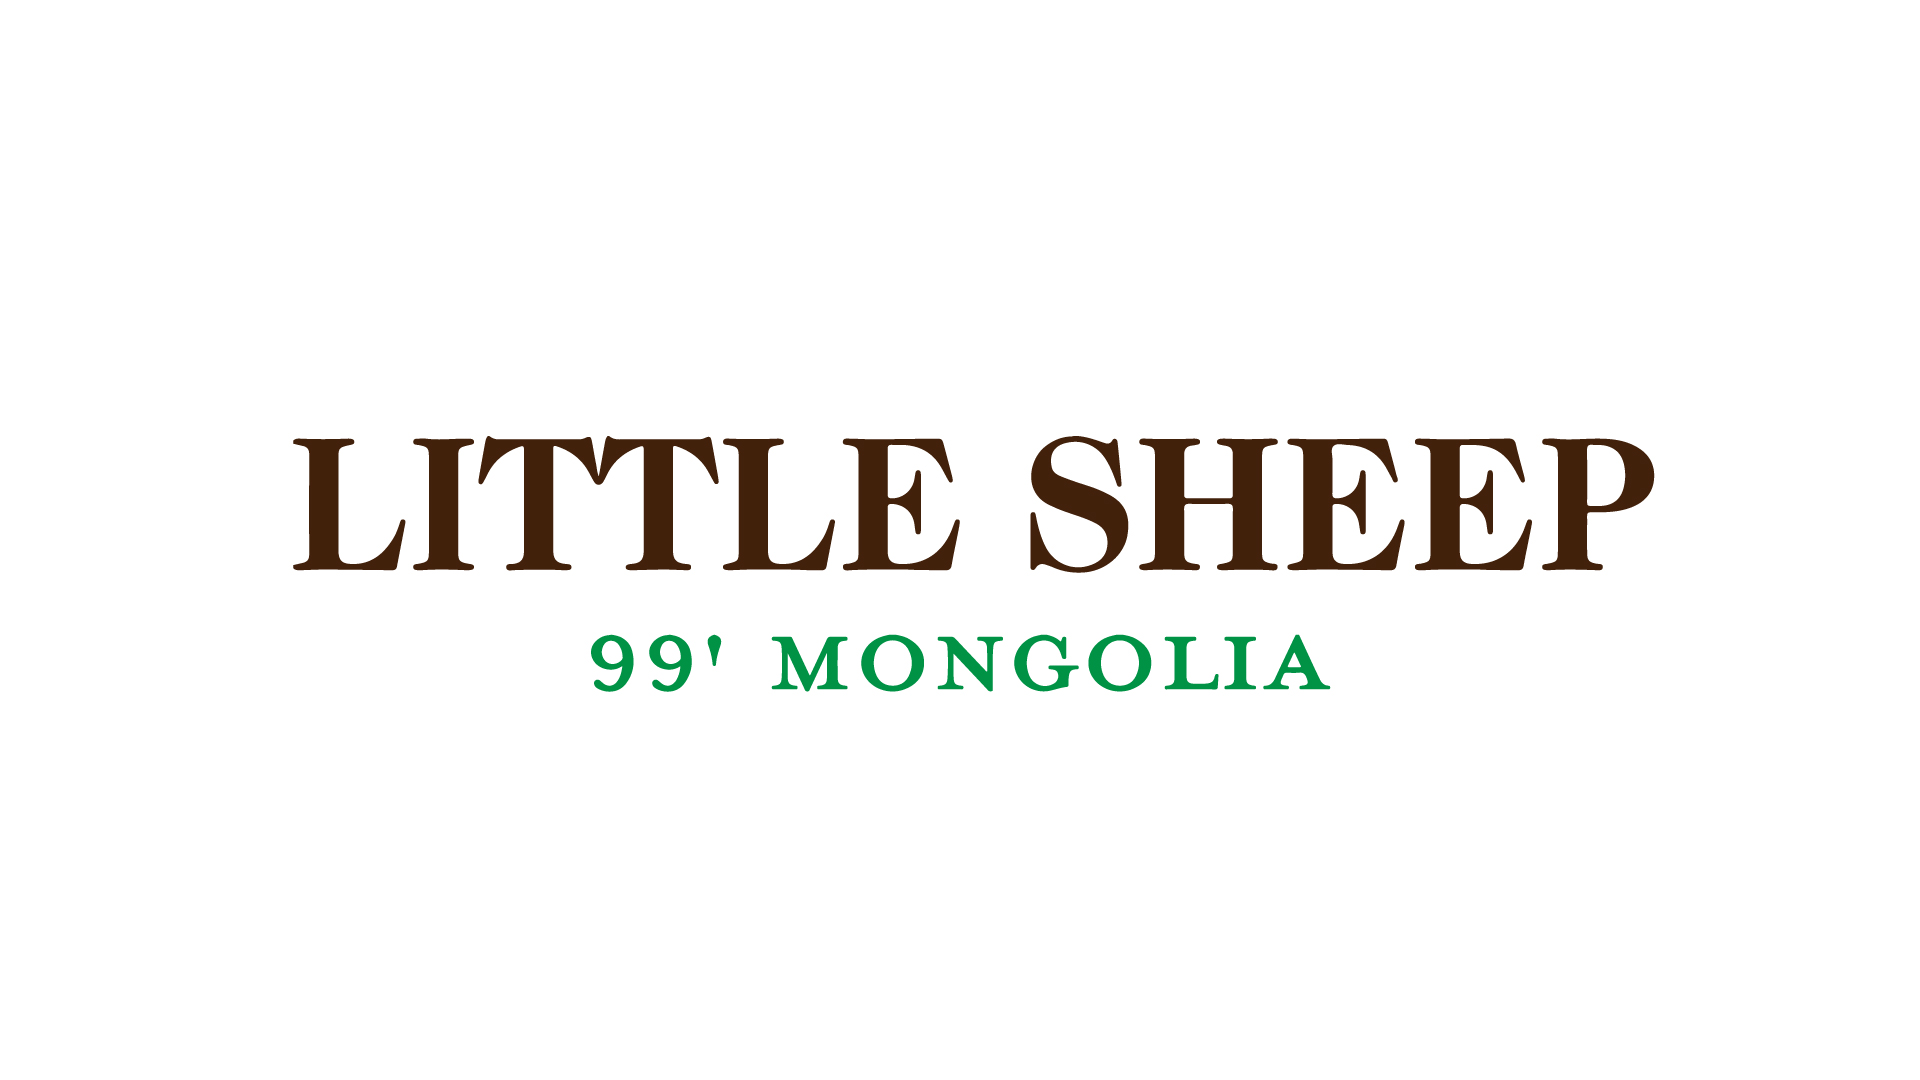 Final logo: I want to deliver the idea that Little Sheep is a place for family gathering and is a kind of cooking method originated in the Mongolia (thus the green).     In the sketches below, I tried to emphasize the meat eating aspect of Hot Pot. It should almost feel like a logo for a BBQ place. Though I chose a more formal logo in the end, I hope the idea still comes across.